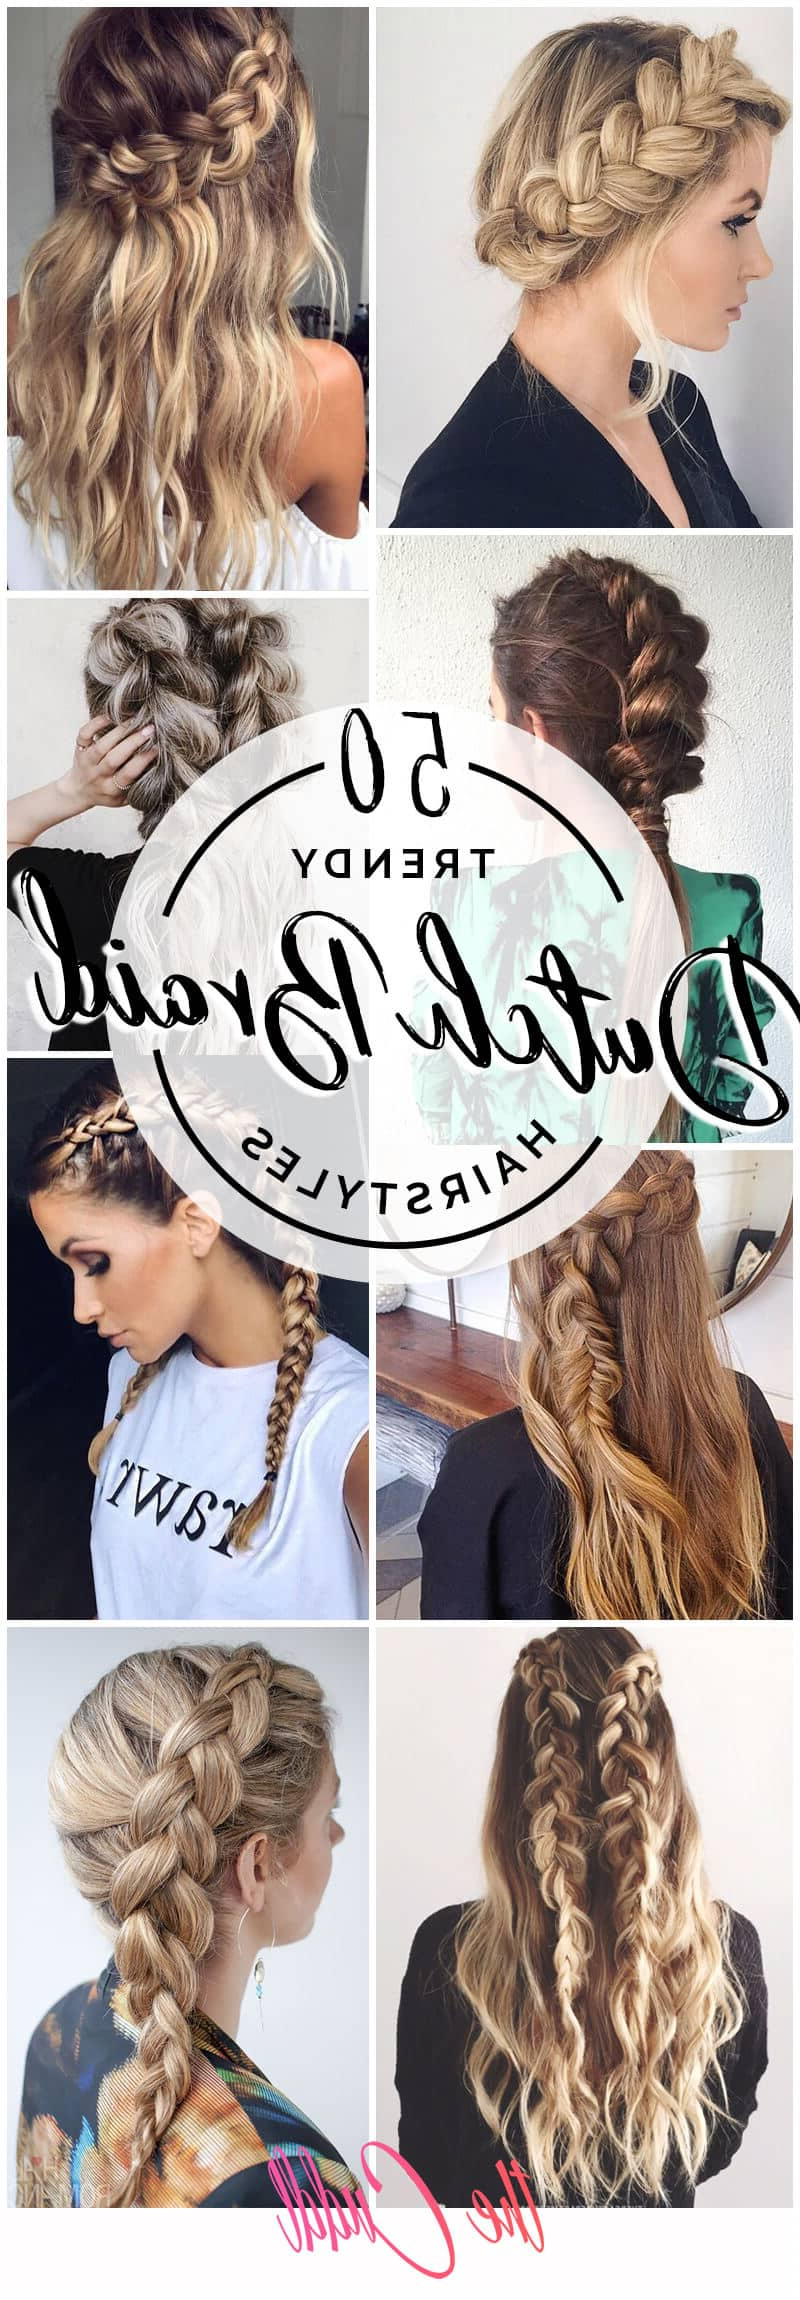 50 Trendy Dutch Braids Hairstyle Ideas To Keep You Cool In 2020 Inside Most Current Side Dutch Braid Hairstyles (View 18 of 20)